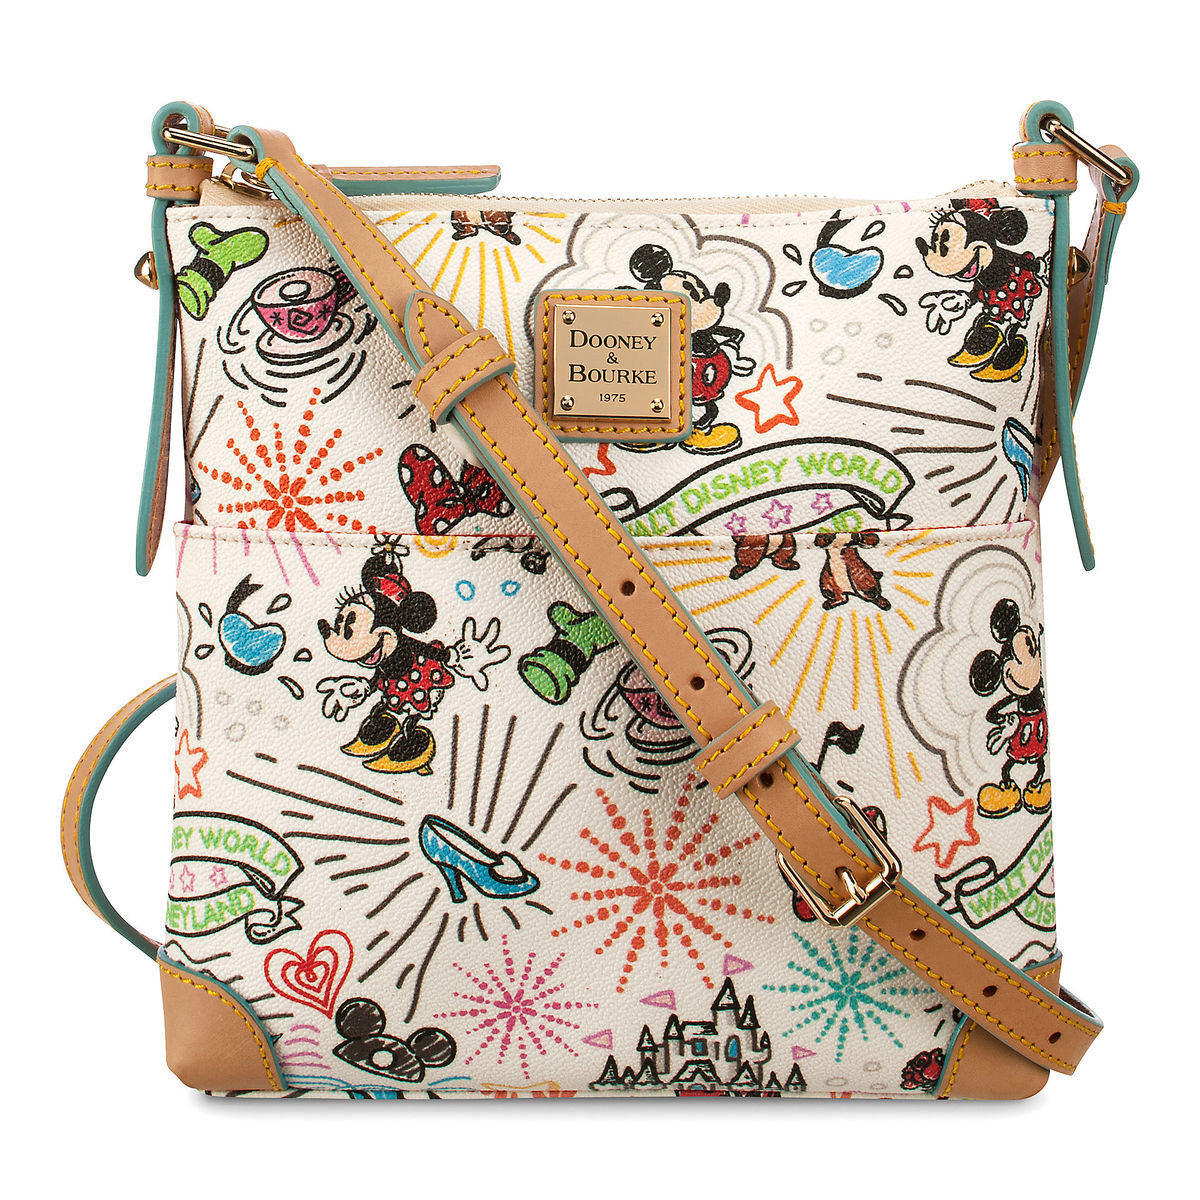 Product Image Of Disney Sketch Crossbody Bag By Dooney Bourke 1